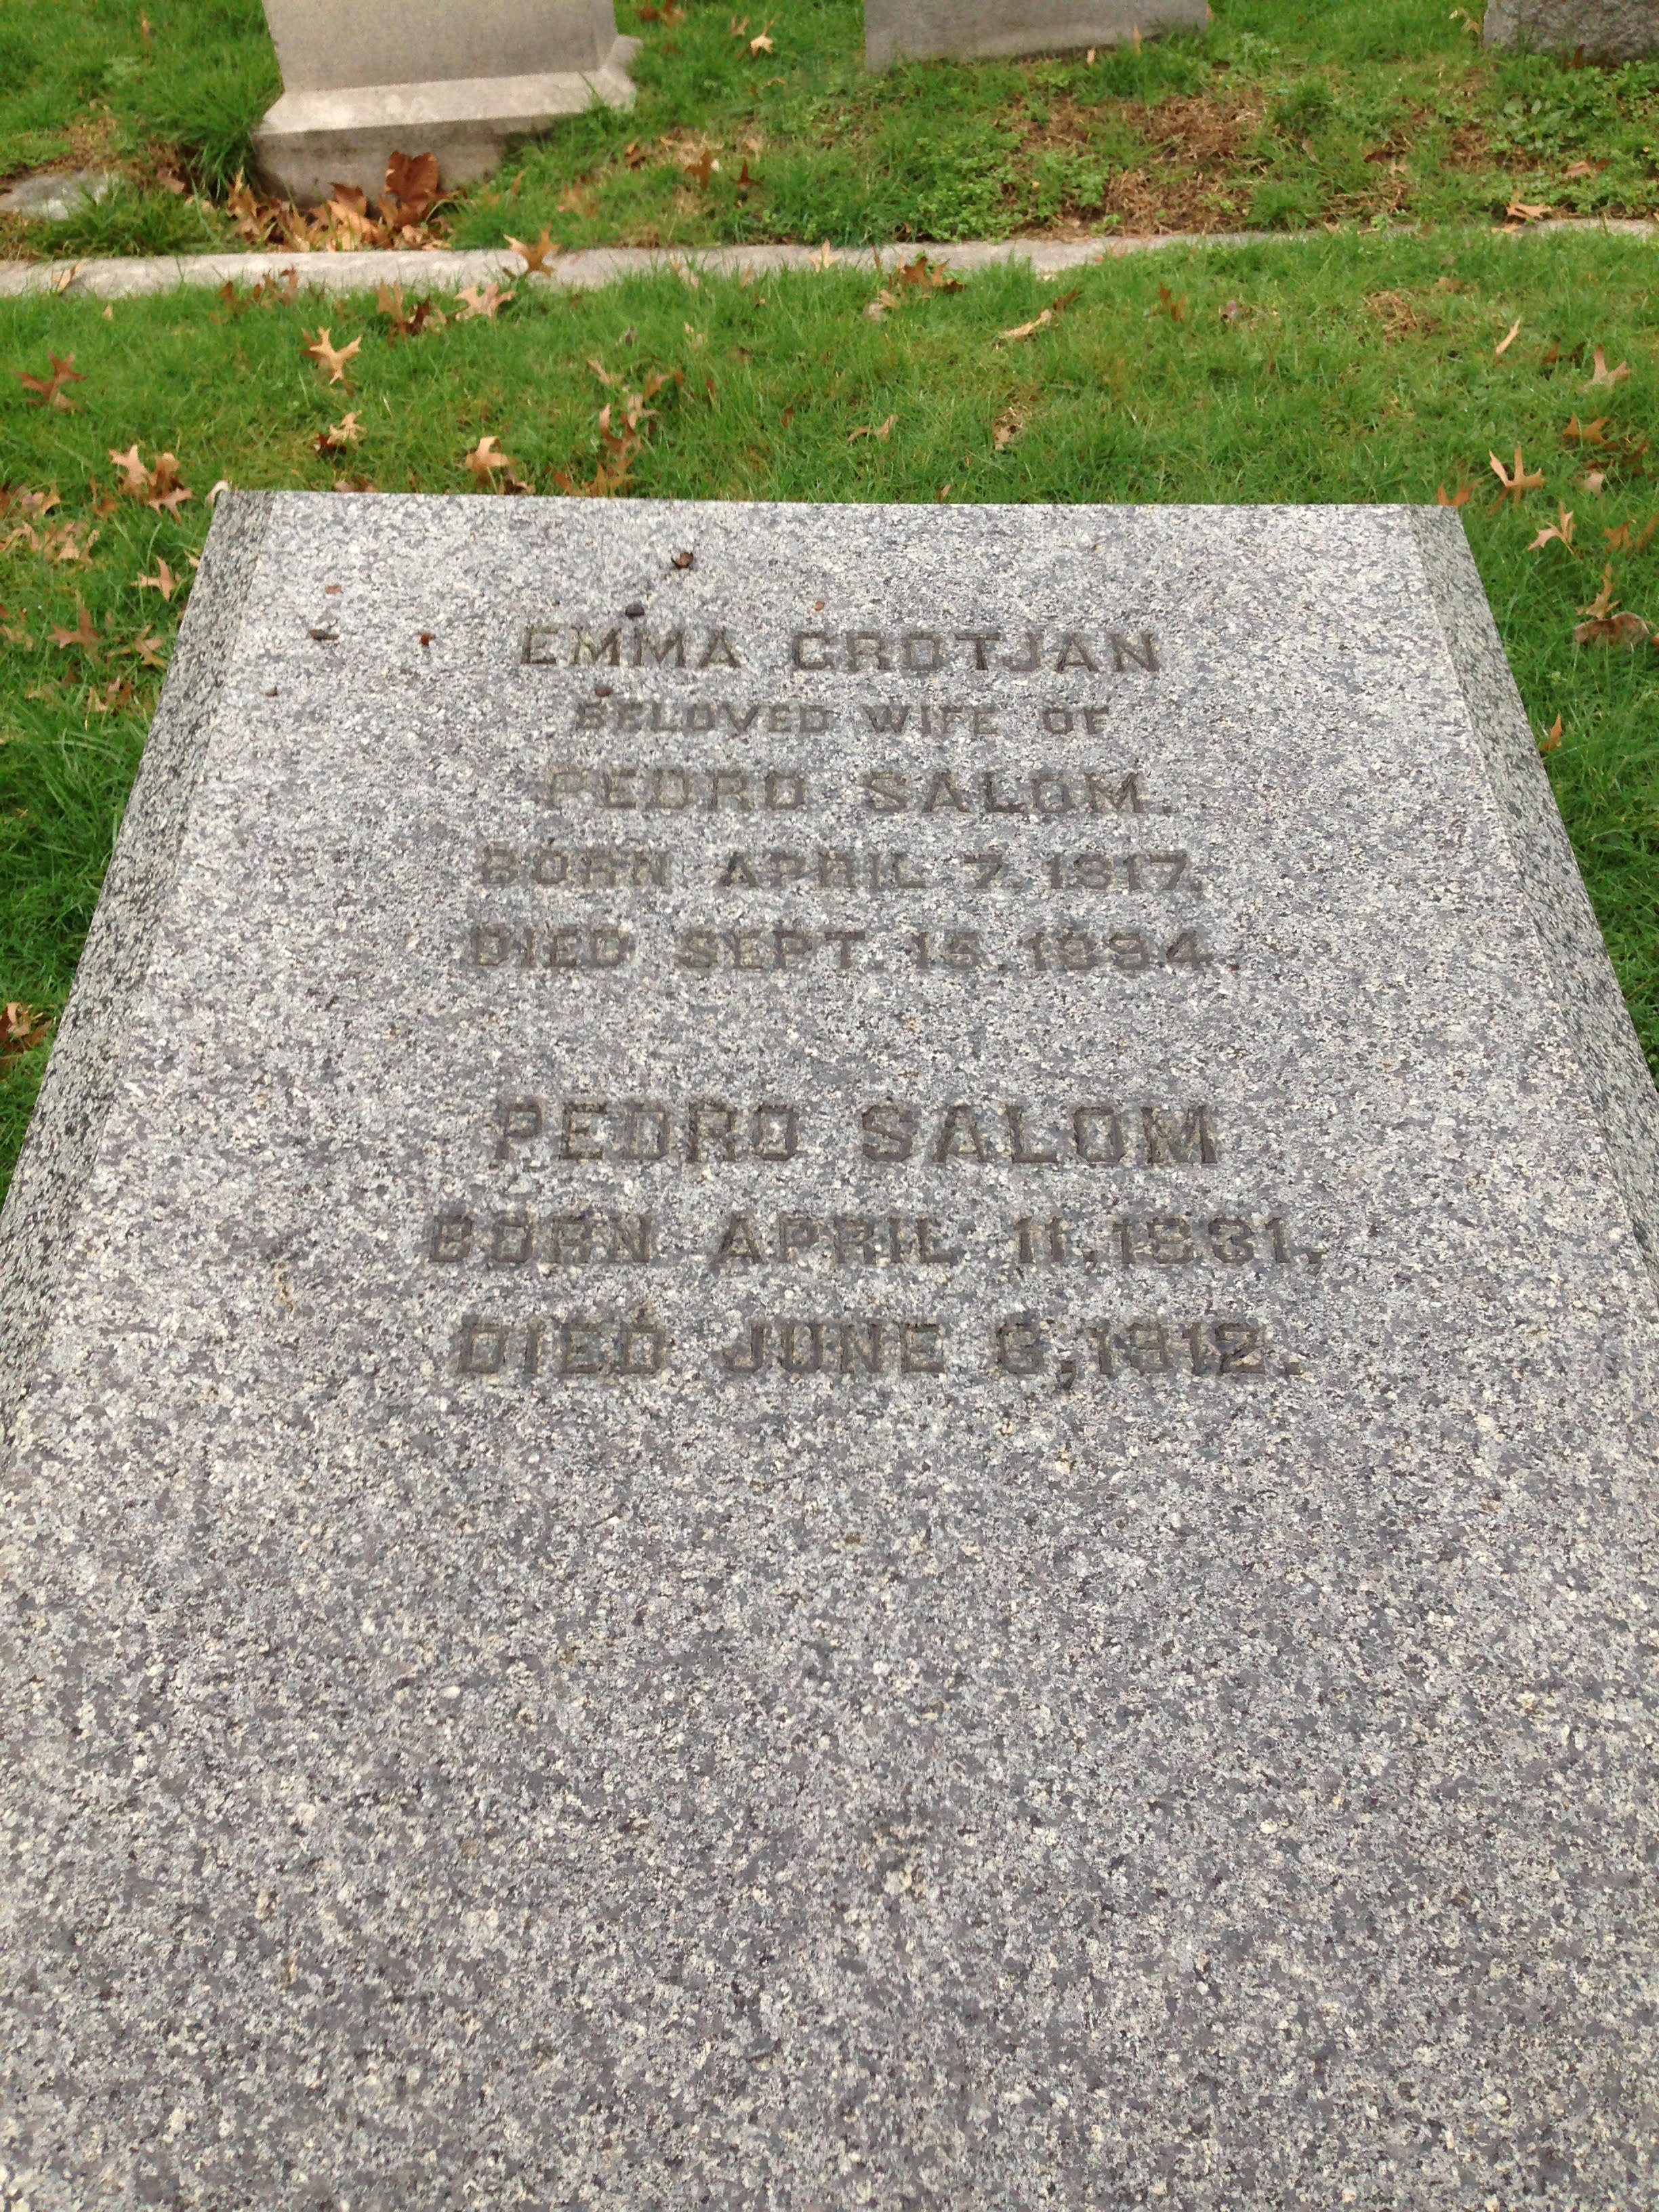 Pedro Salom, the inventor of the first battery powered car, is buried at The Woodlands.